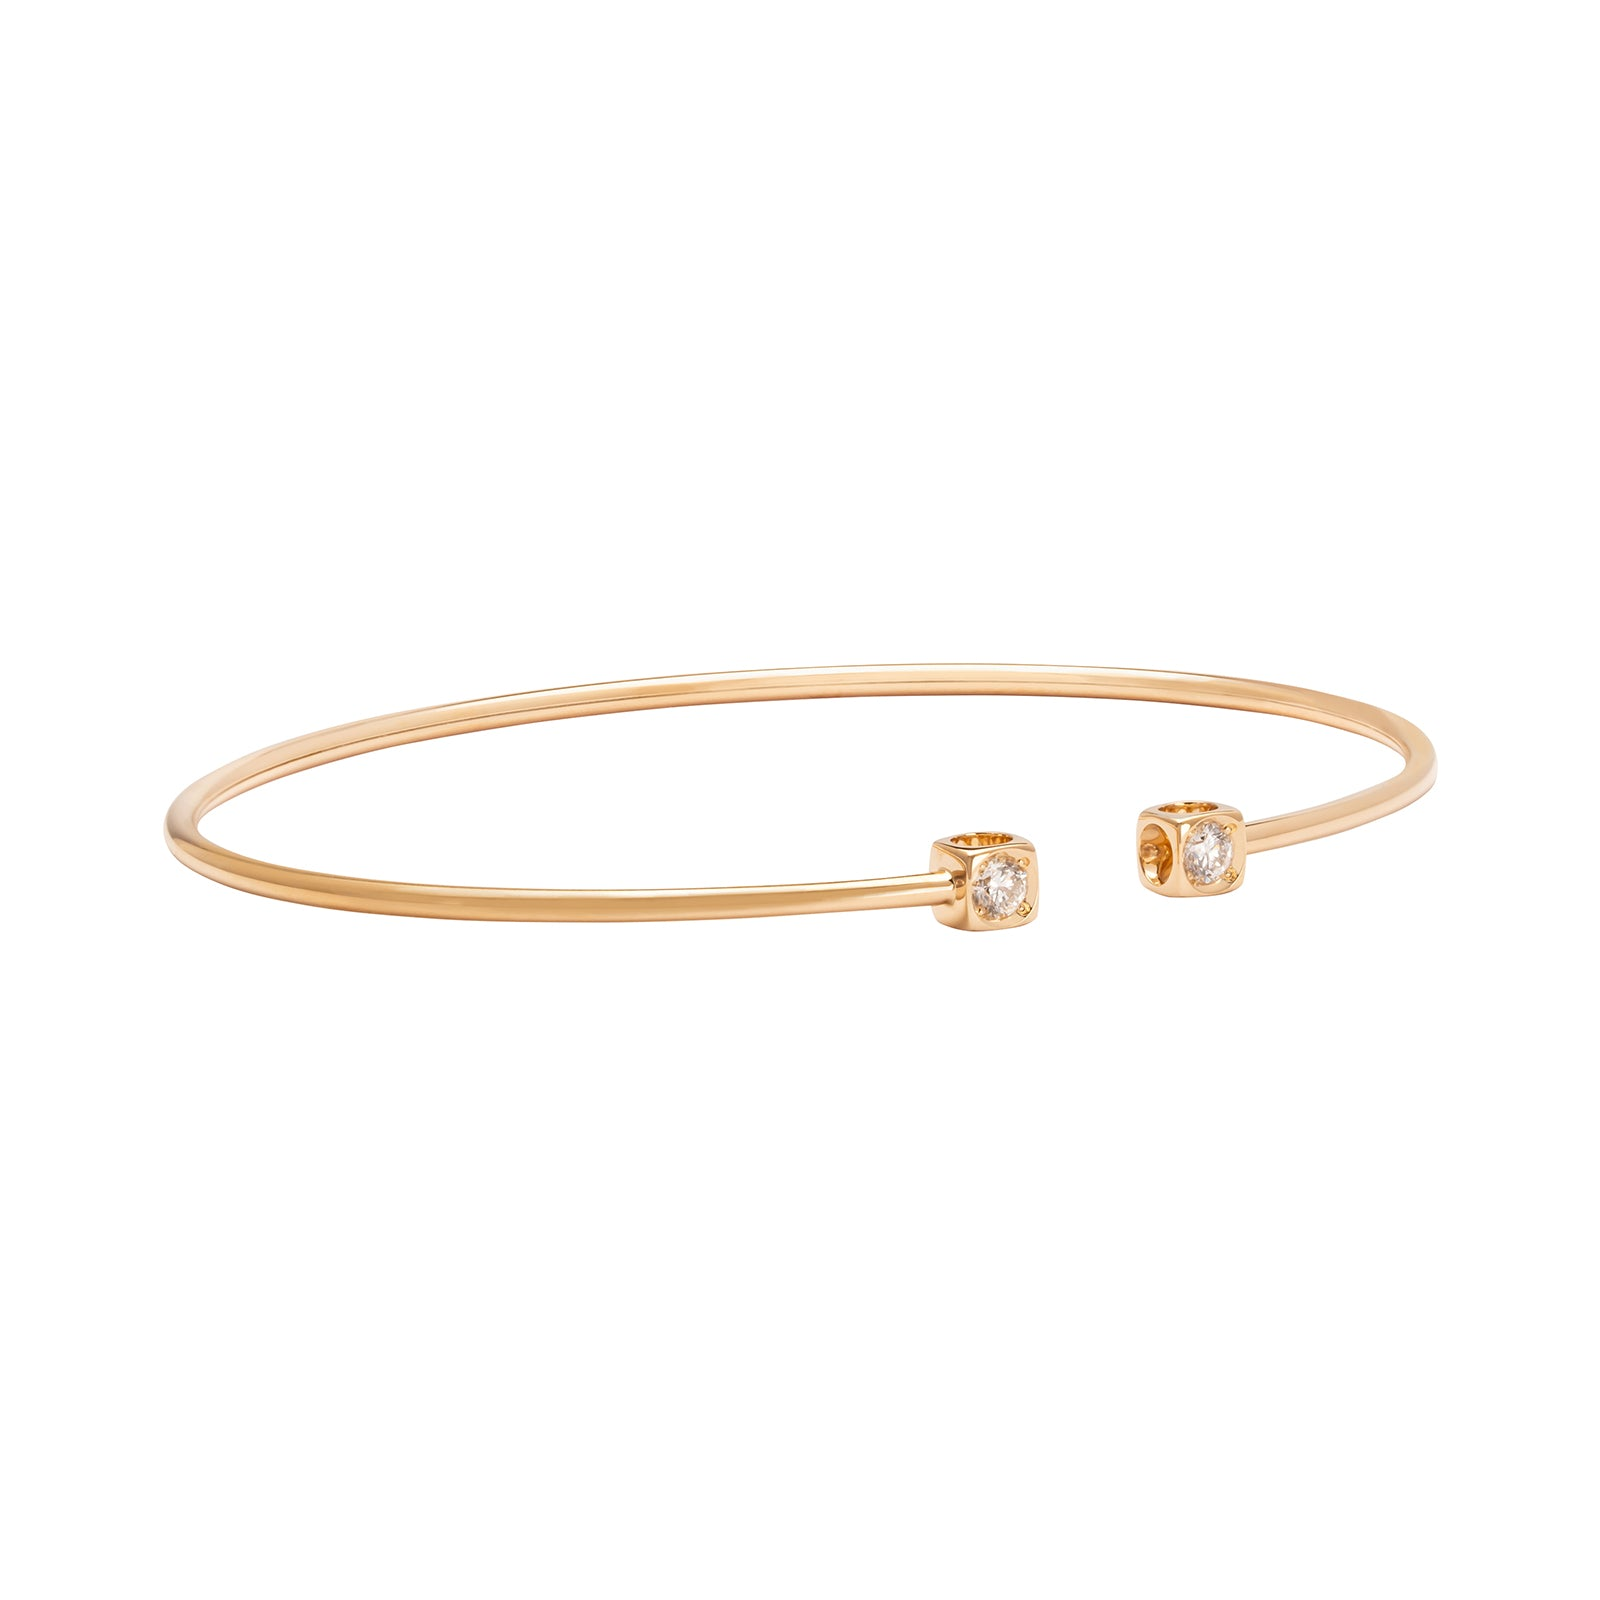 Dinh Van Le Cube Diamant Small Bracelet - Yellow Gold - Bracelets - Broken English Jewelry